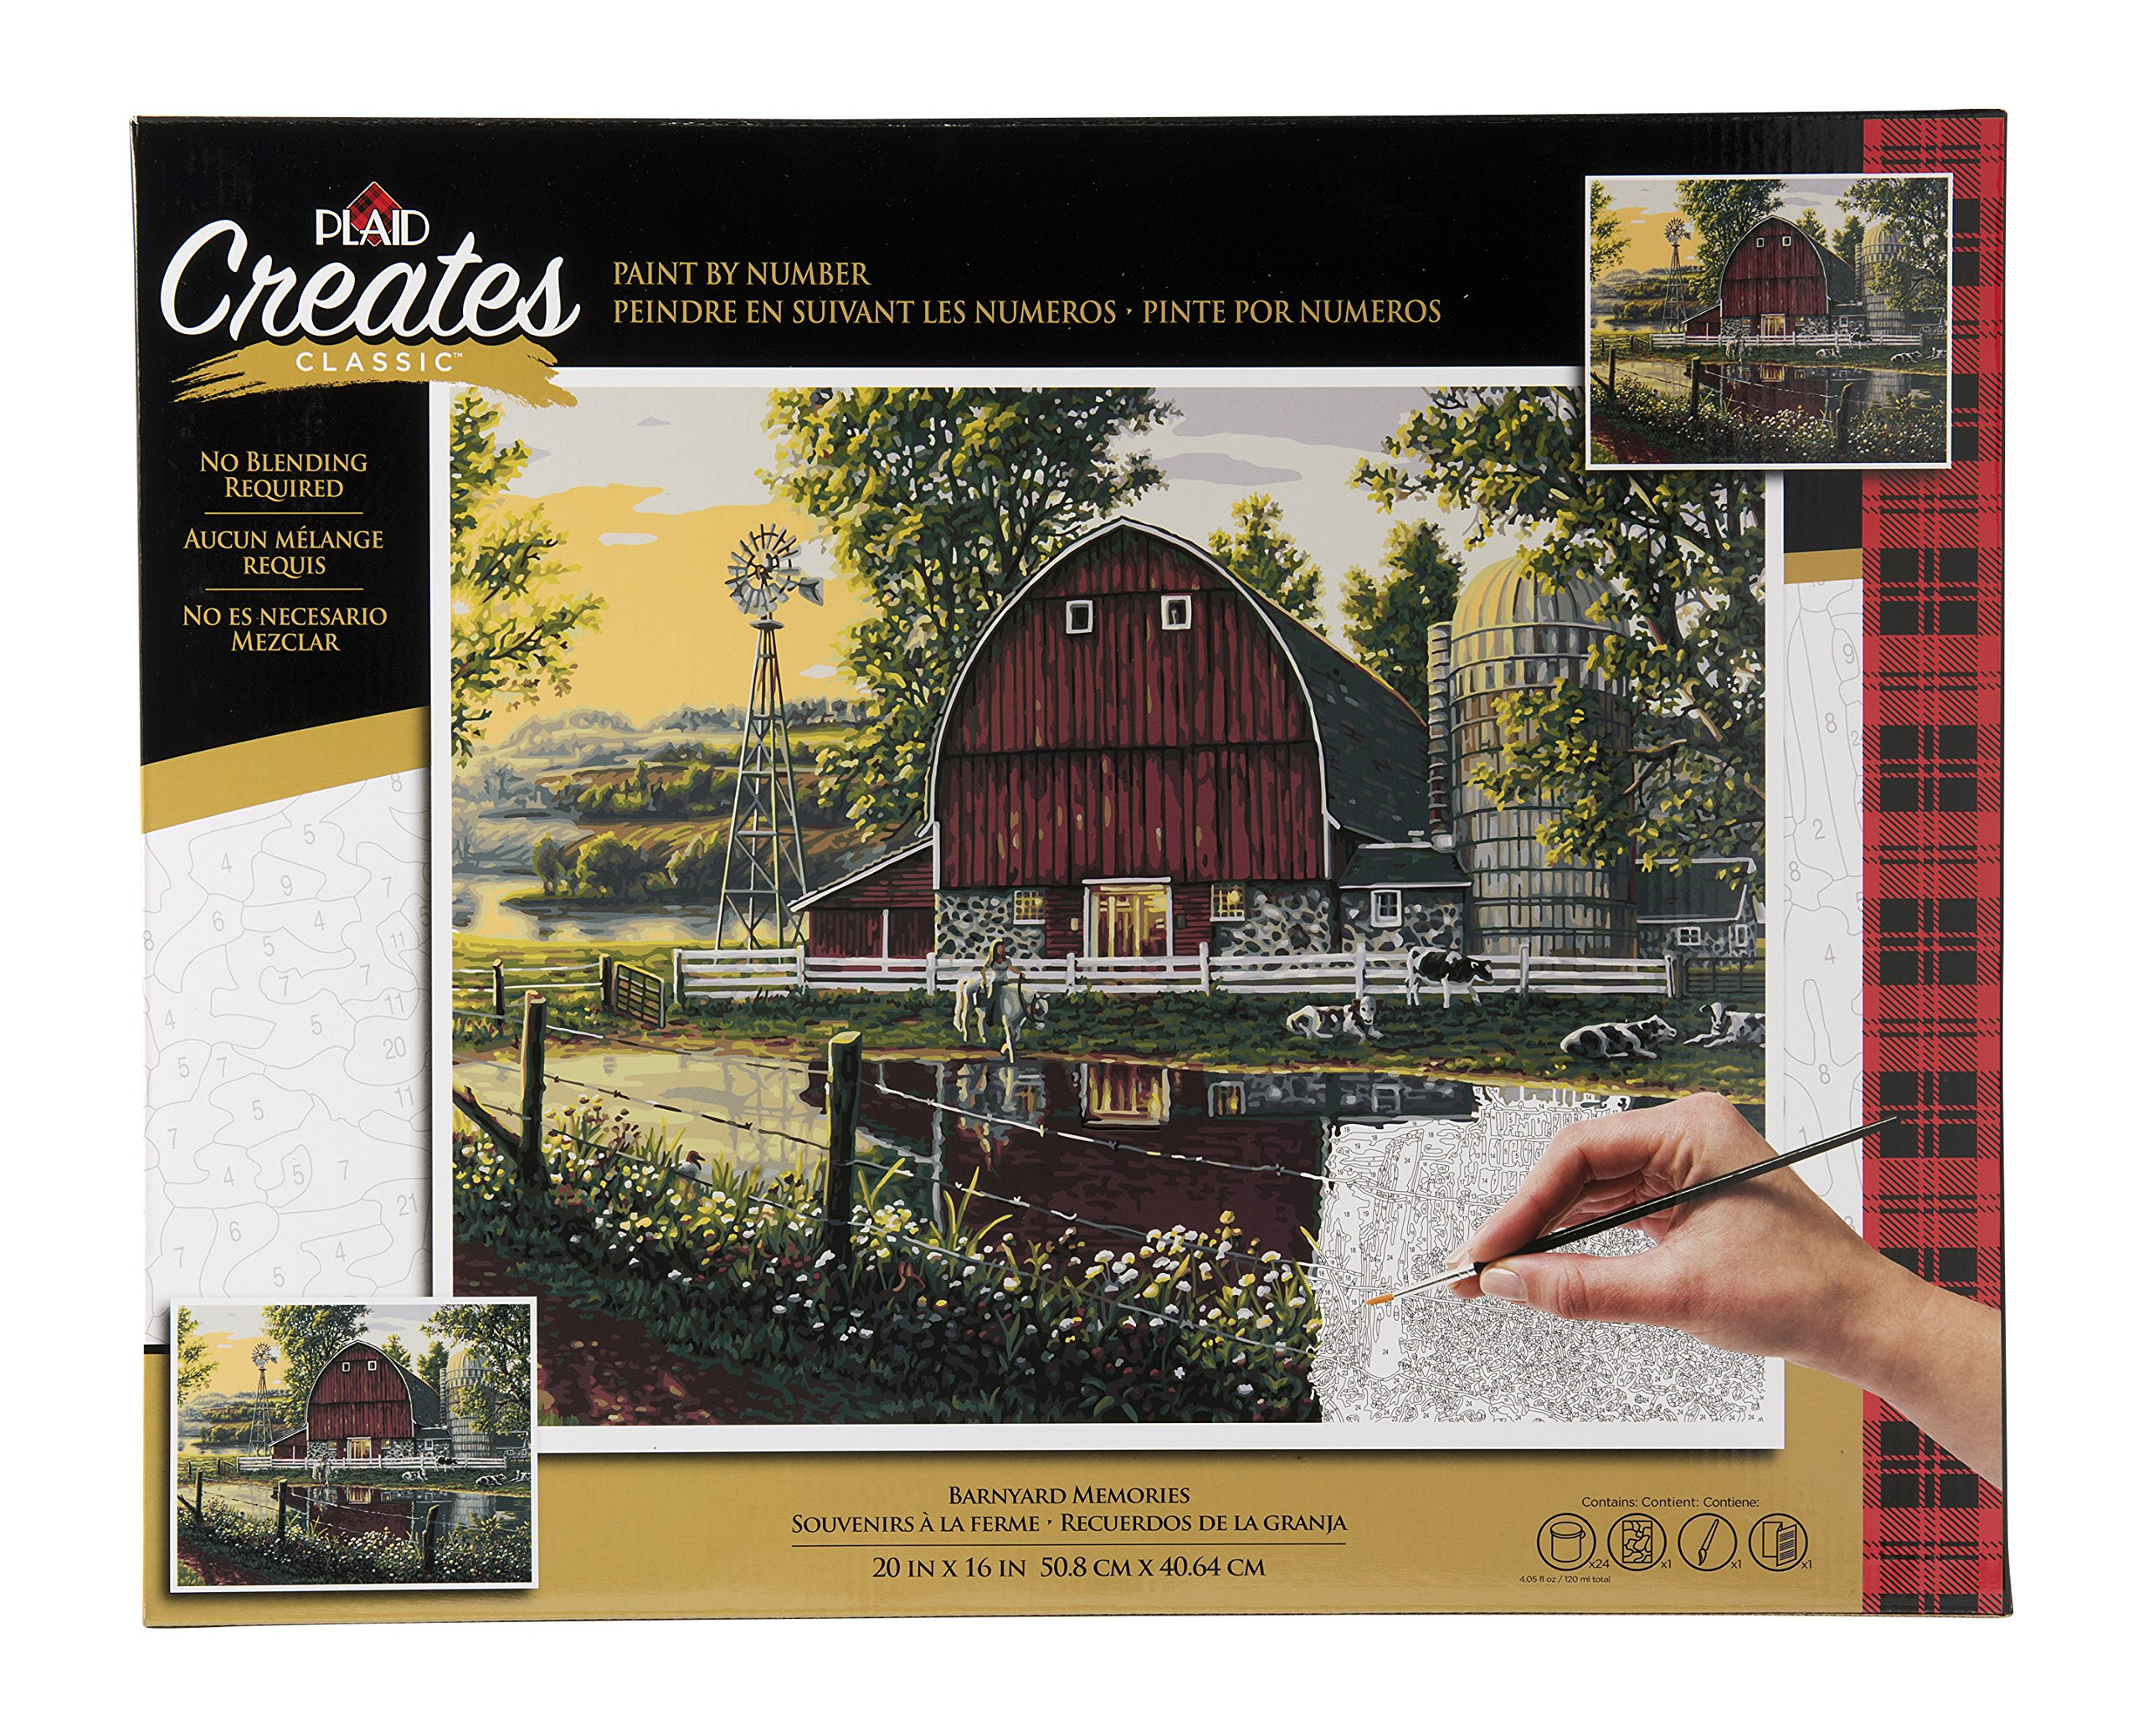 Plaid Creates Paint by Number Kit (16 by 20-inch), 60163 Barnyard Memories